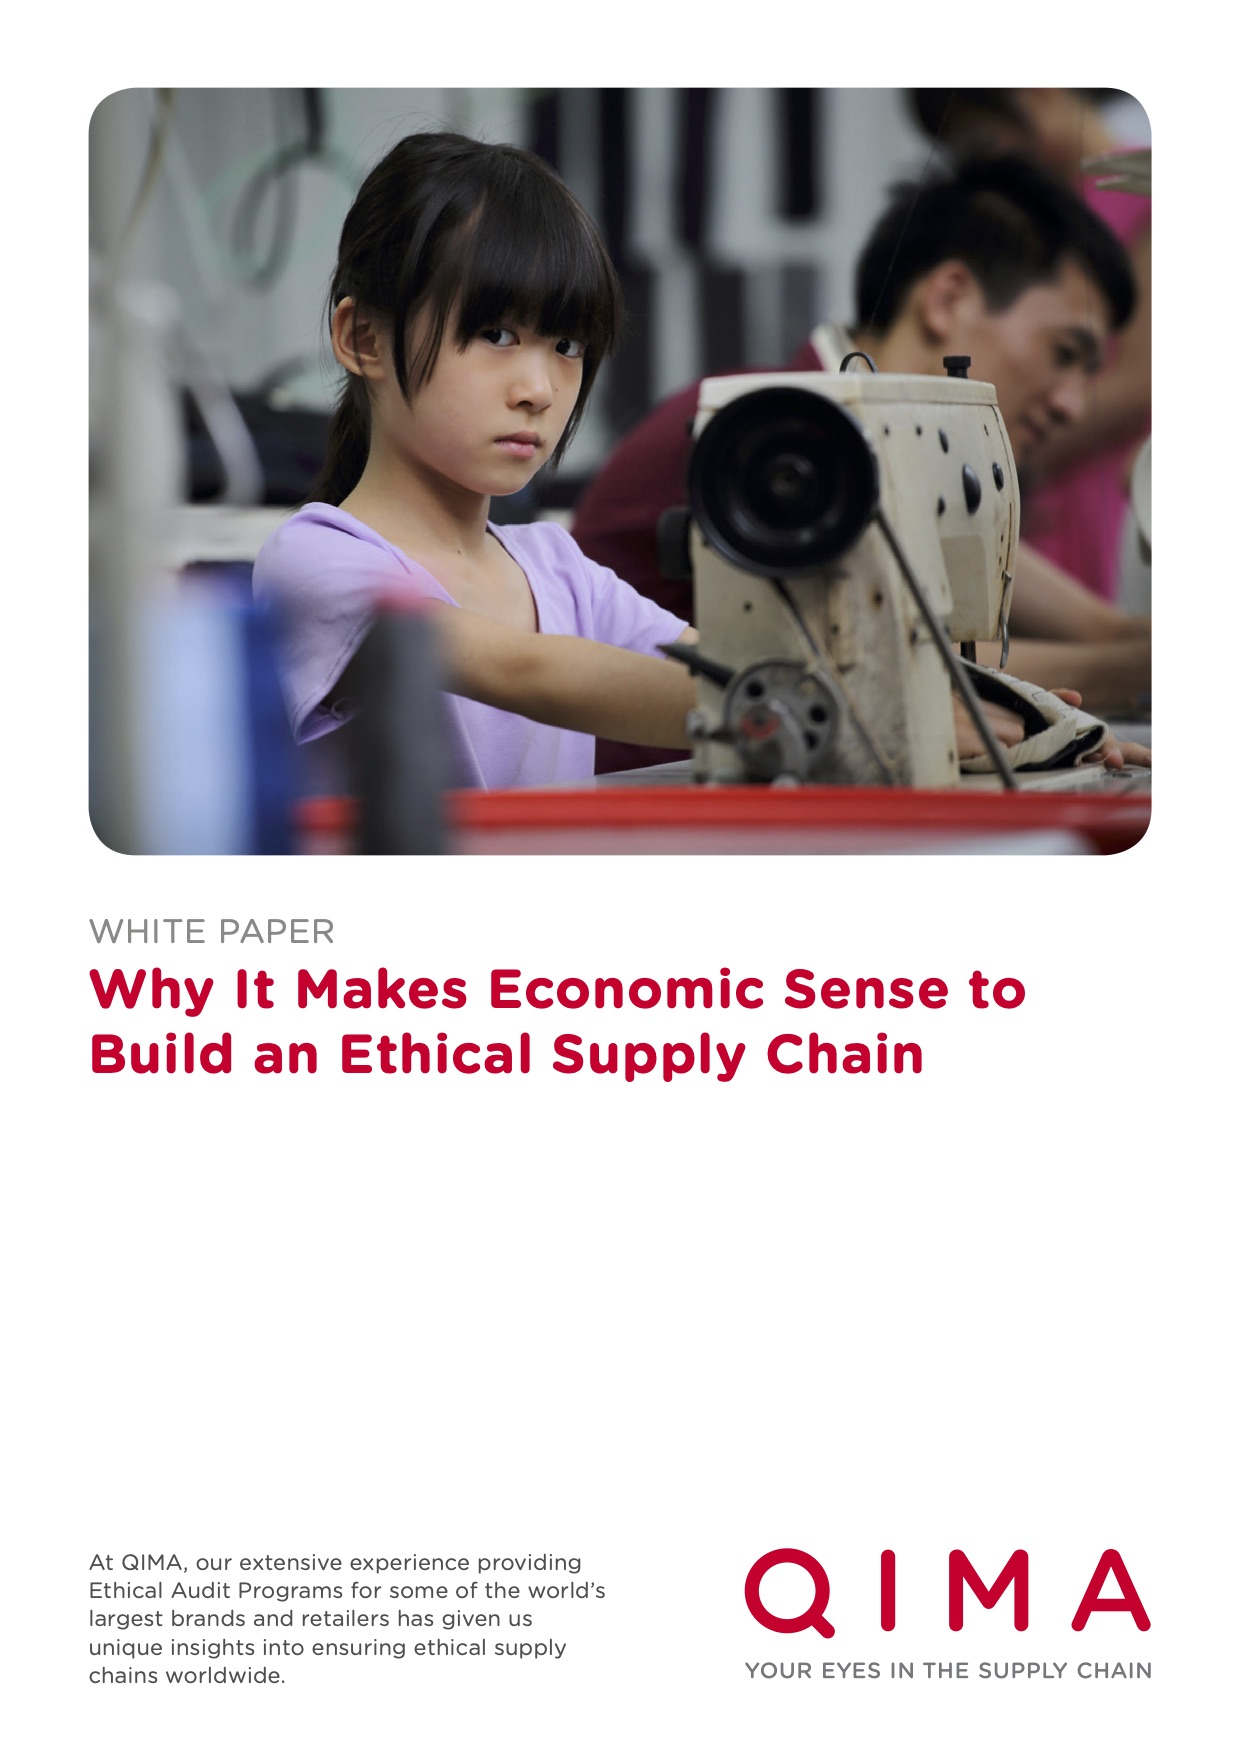 Ethical Supply Chains an Investment, Not a Cost